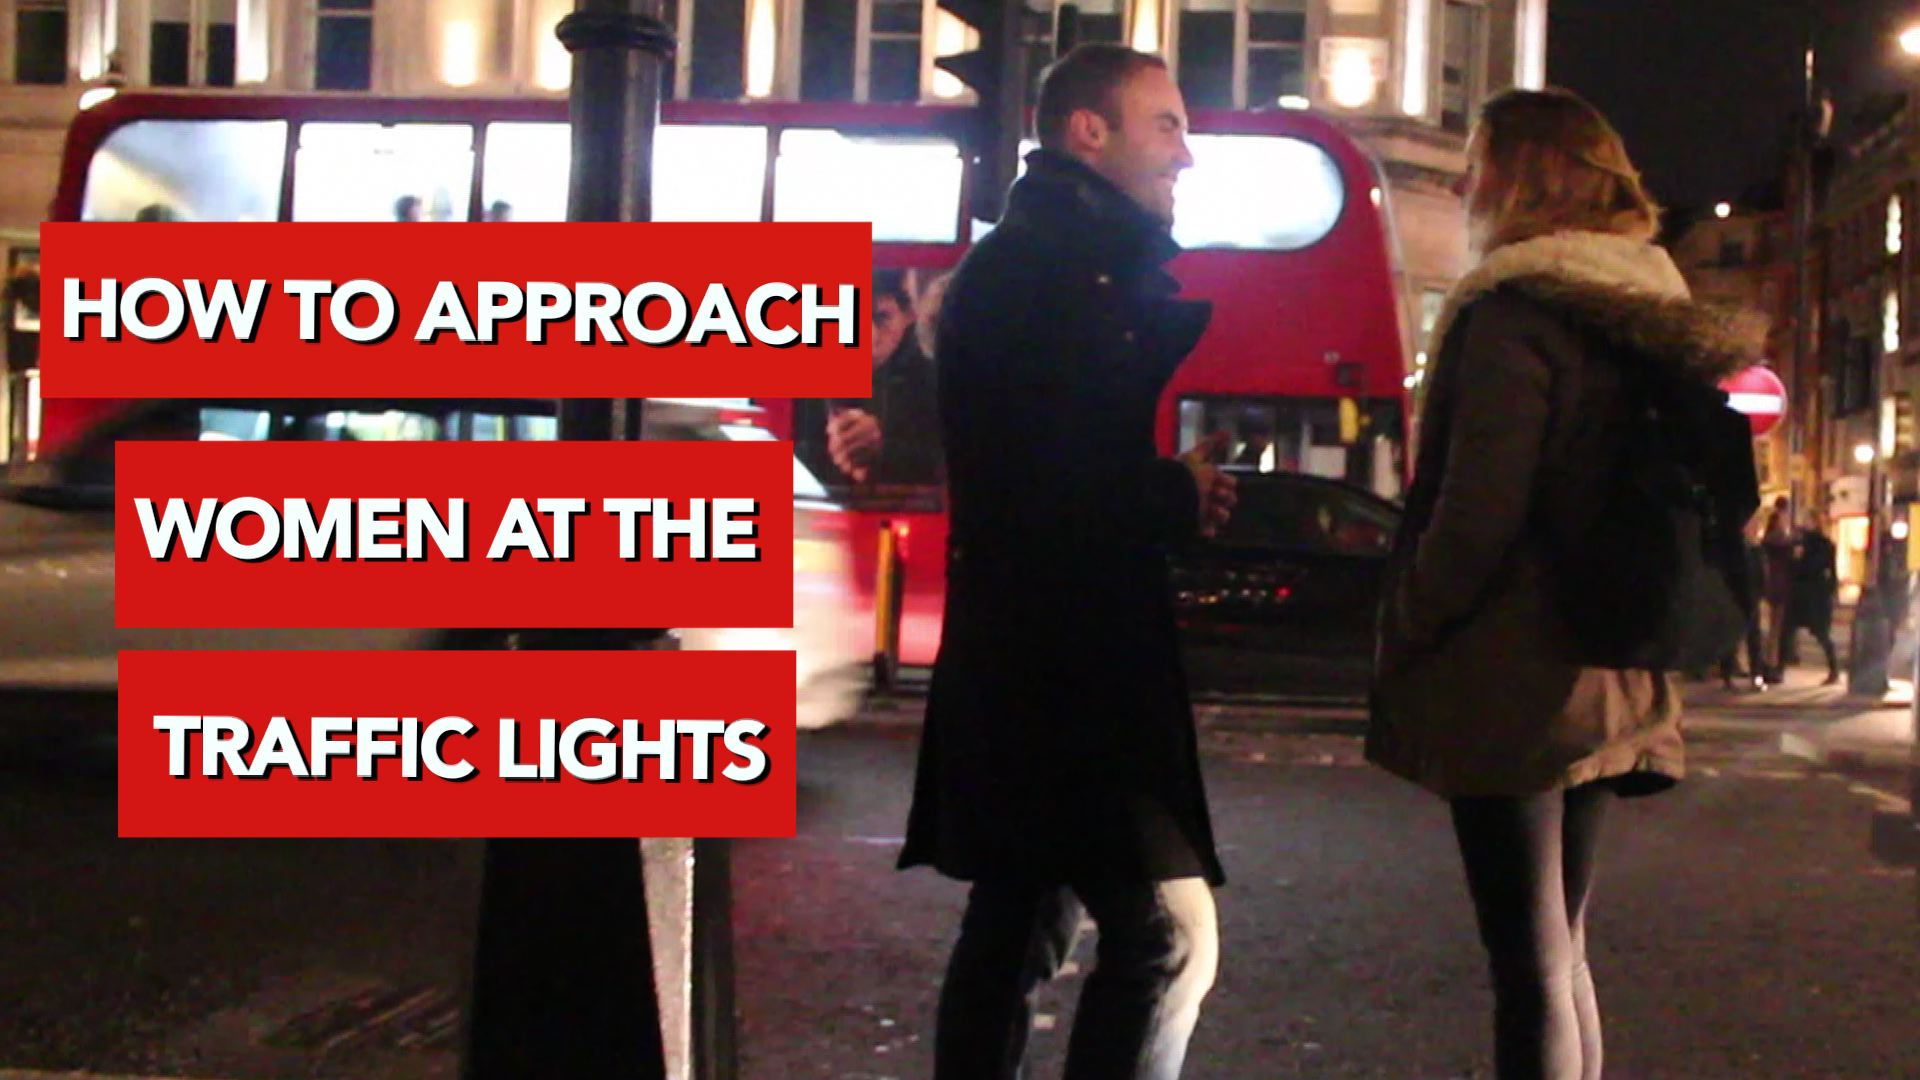 How to approach women at traffic lights